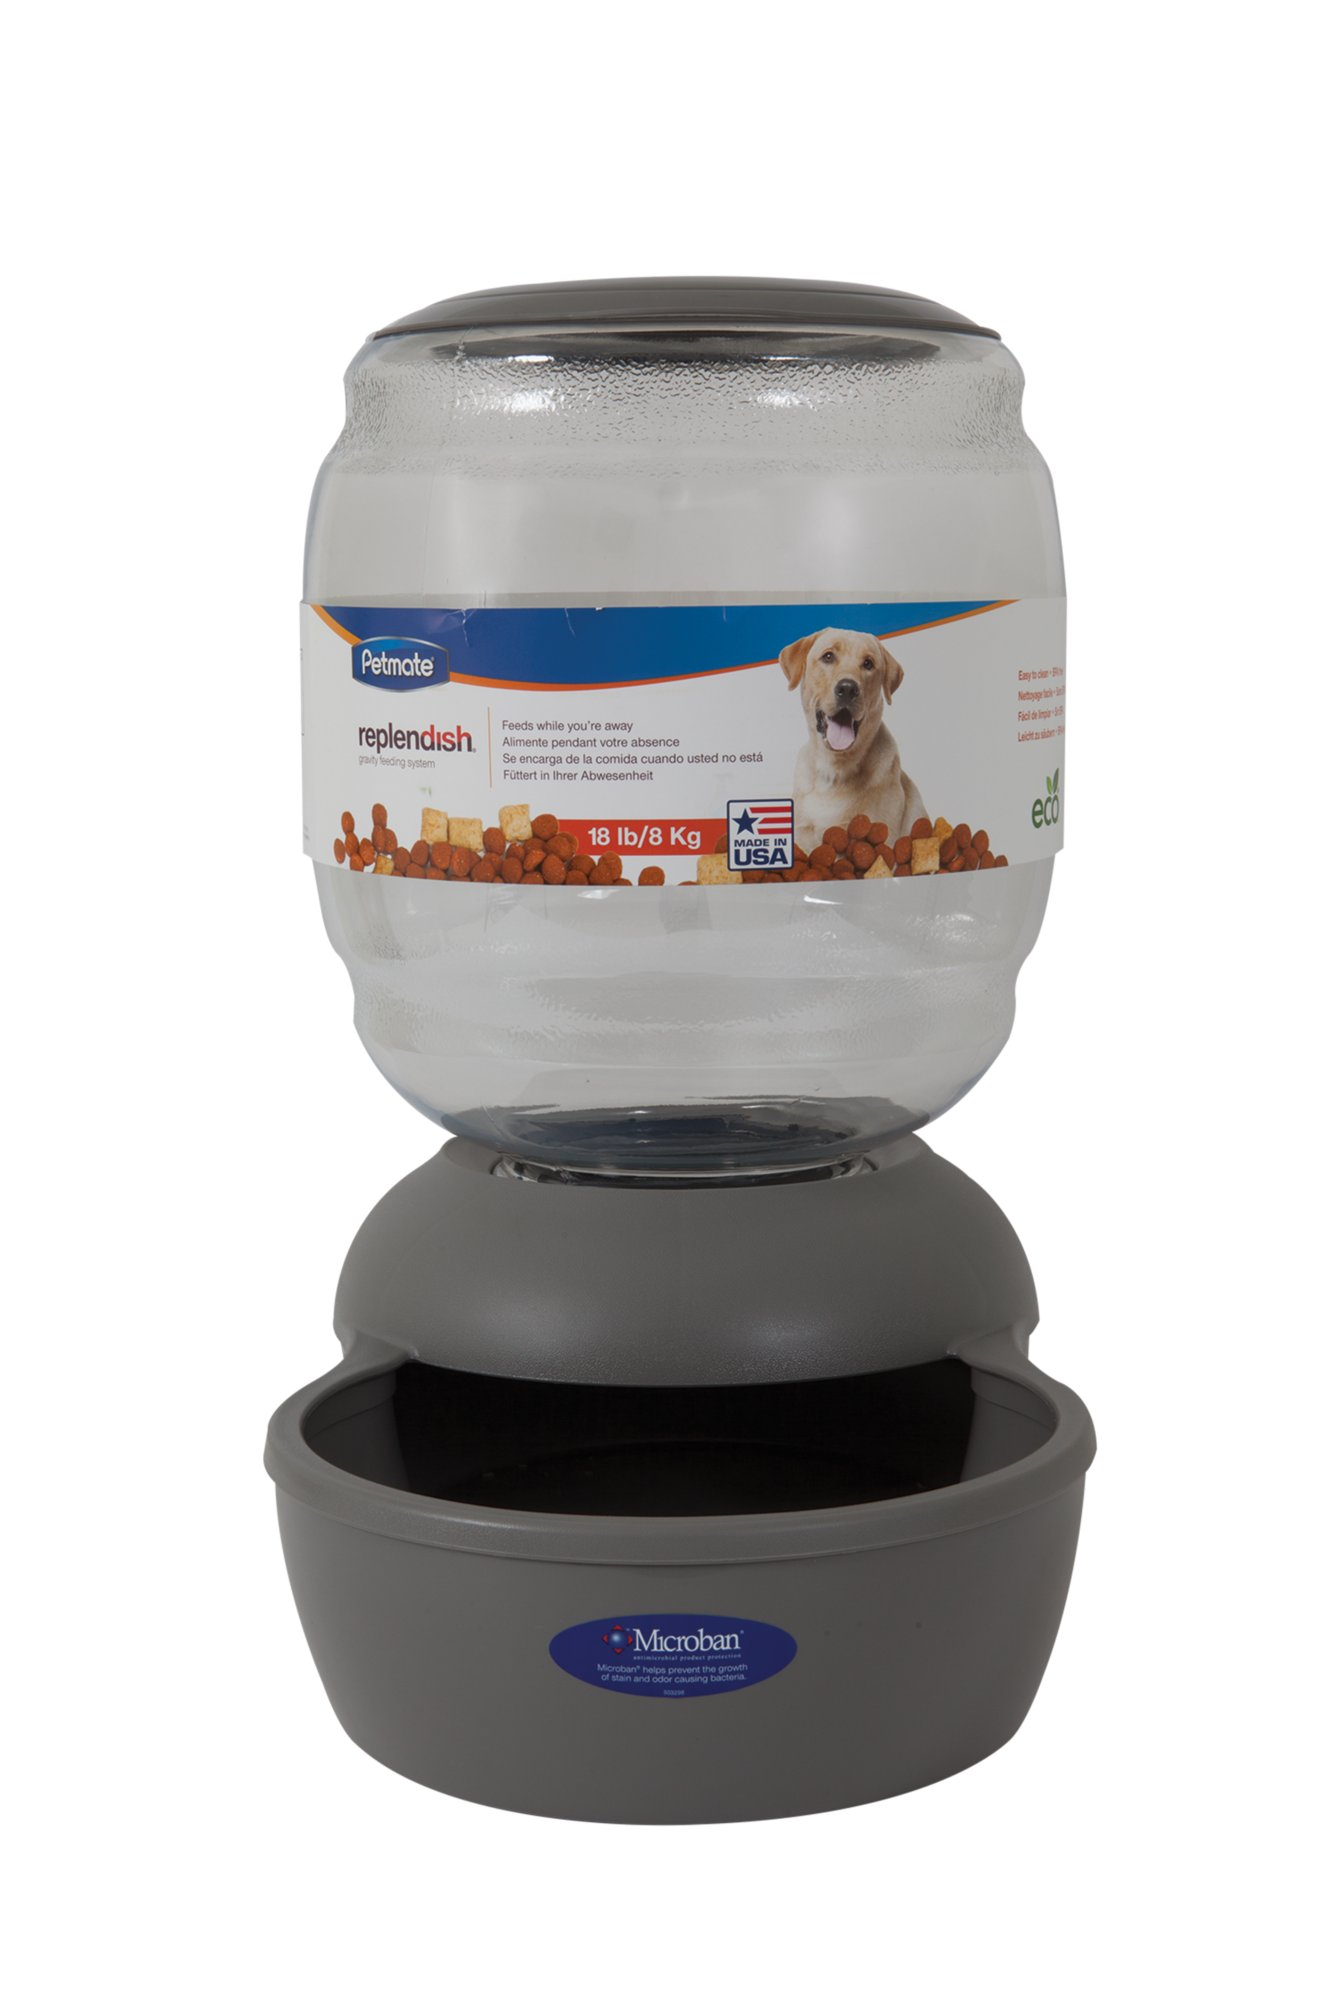 Petmate Replendish Gravity Feeder Grey Dog Bowl Petco